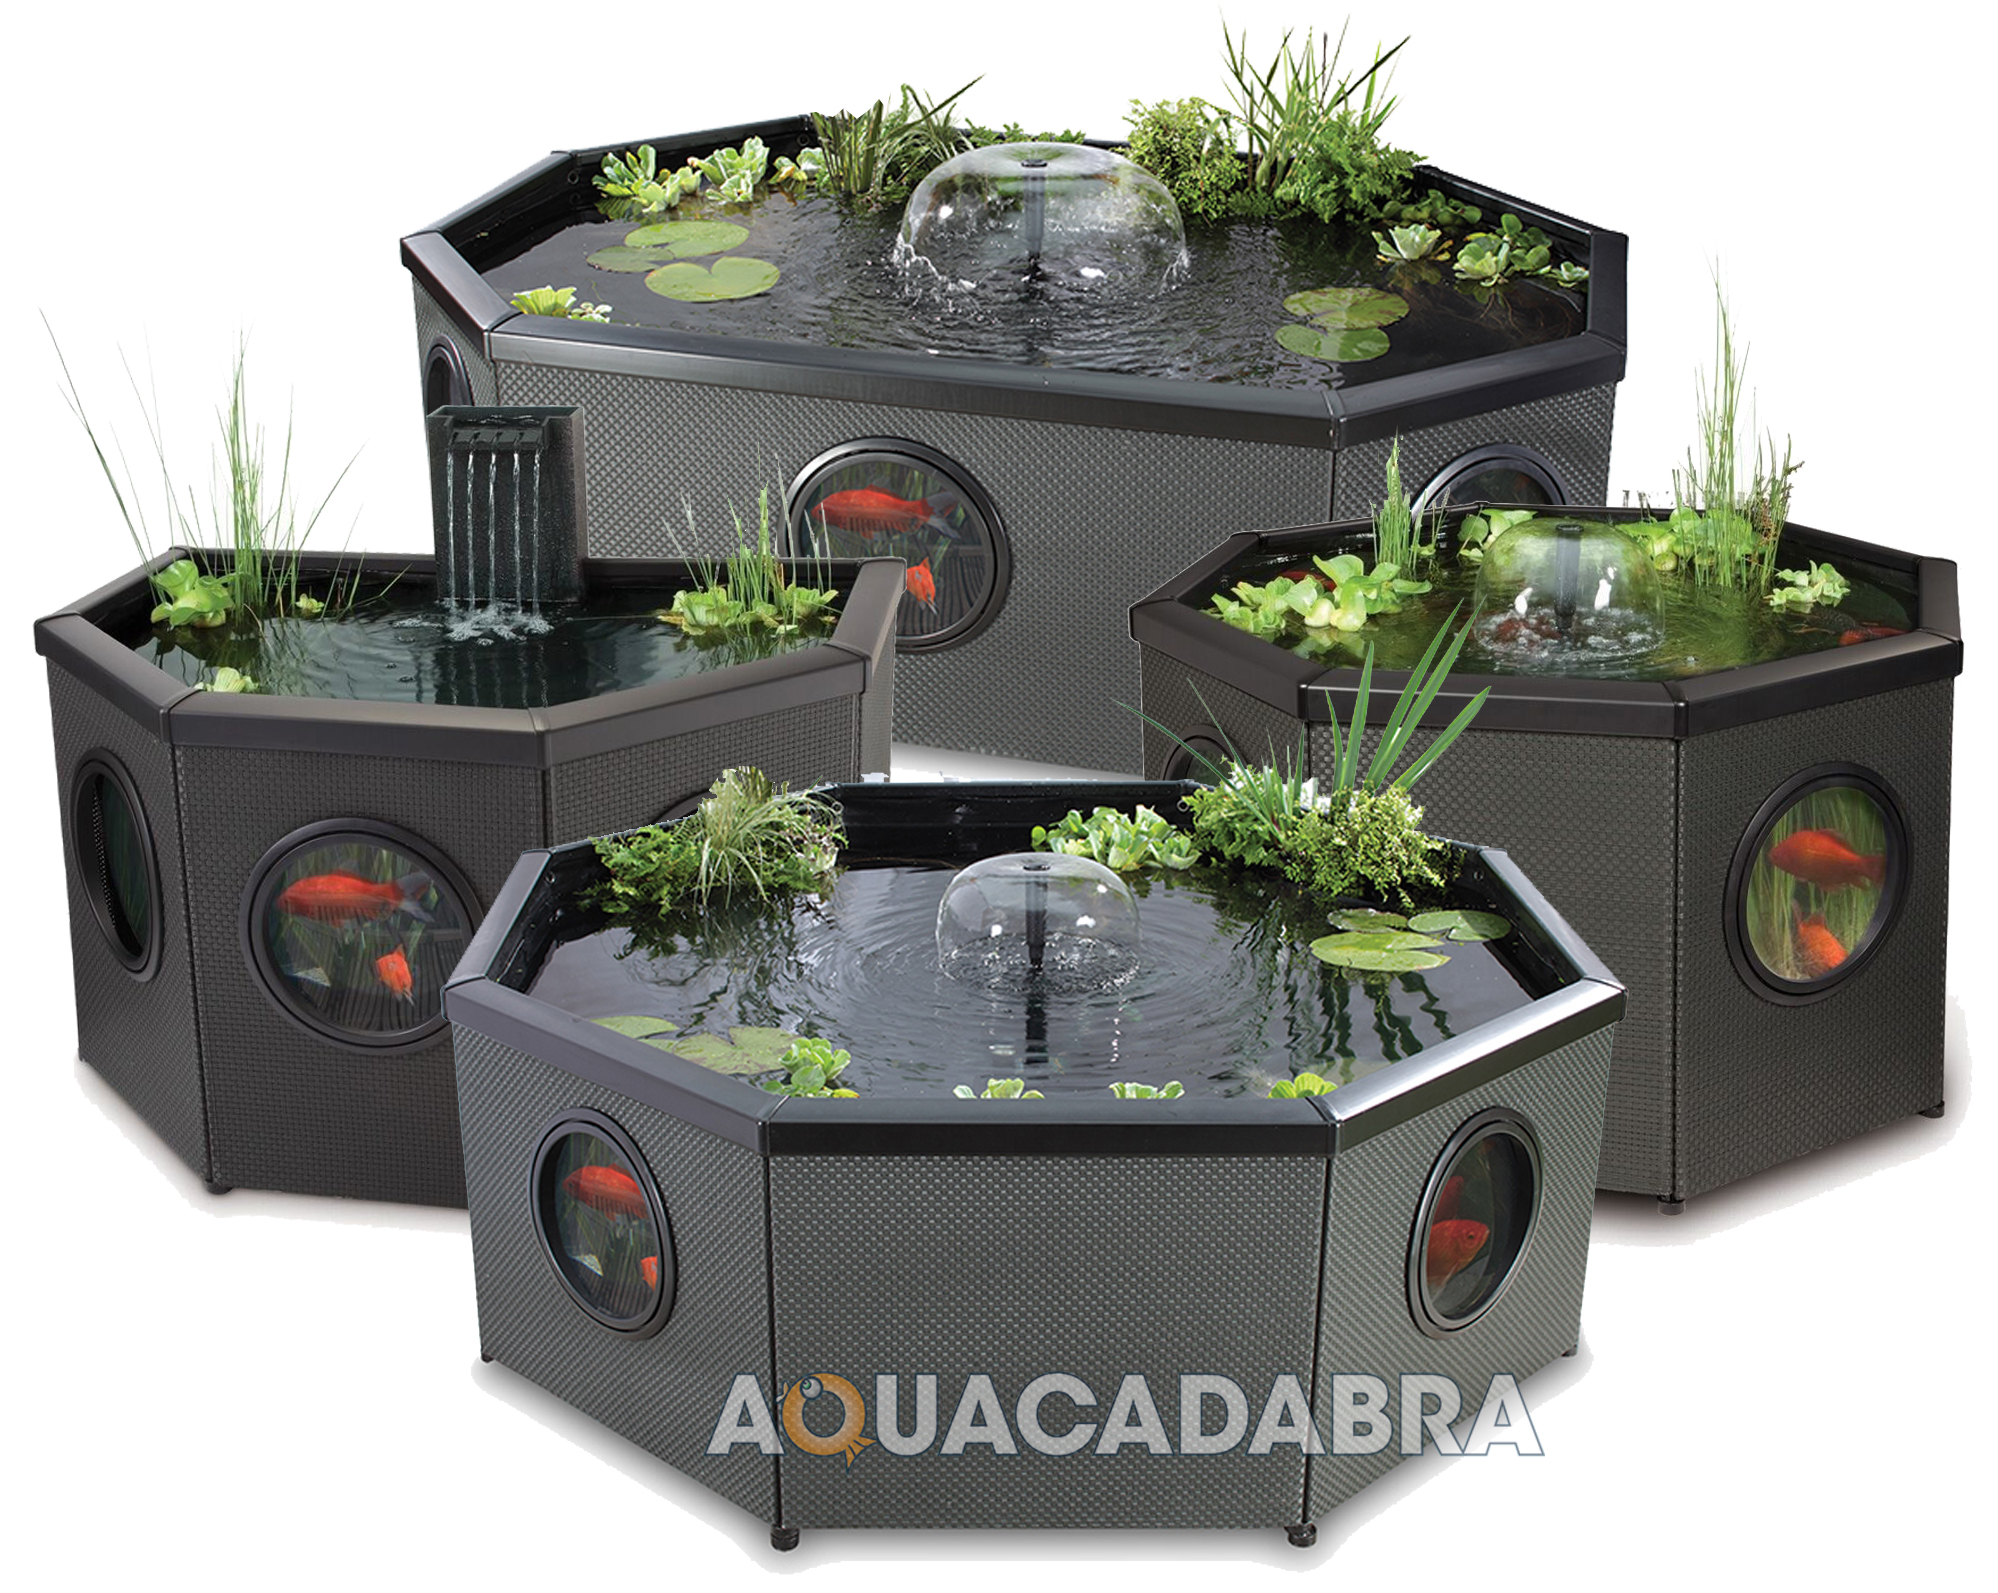 BLAGDON AFFINITY MOCHA FISH POND KOI COLDWATER PATIO AQUARIUM POOL WATER  FEATURE